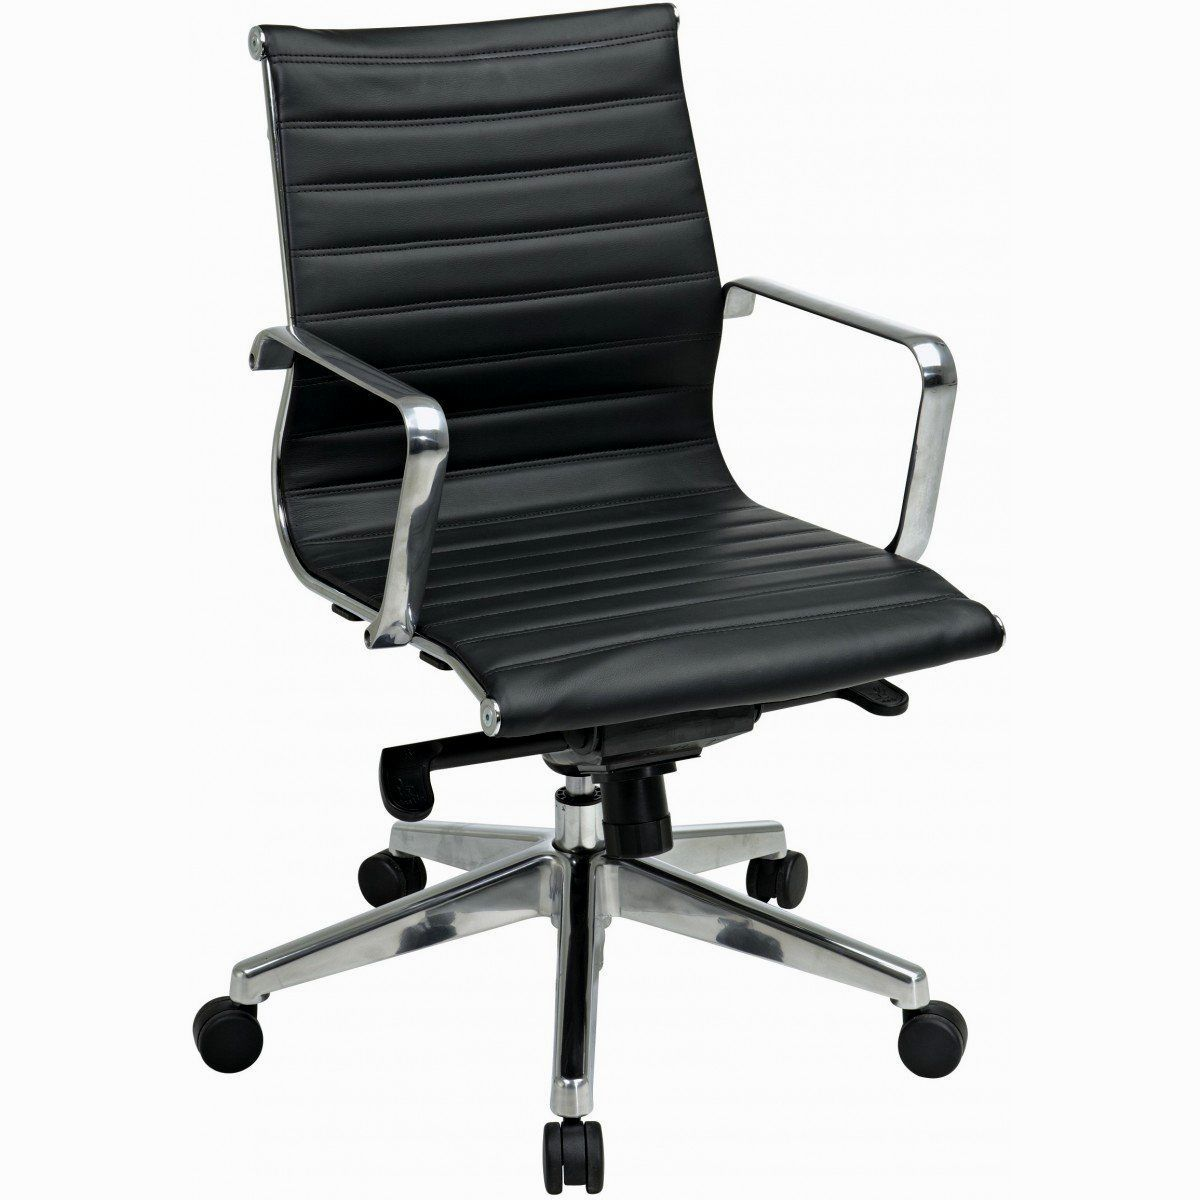 petite office chairs. Staples Petite Office Chairs